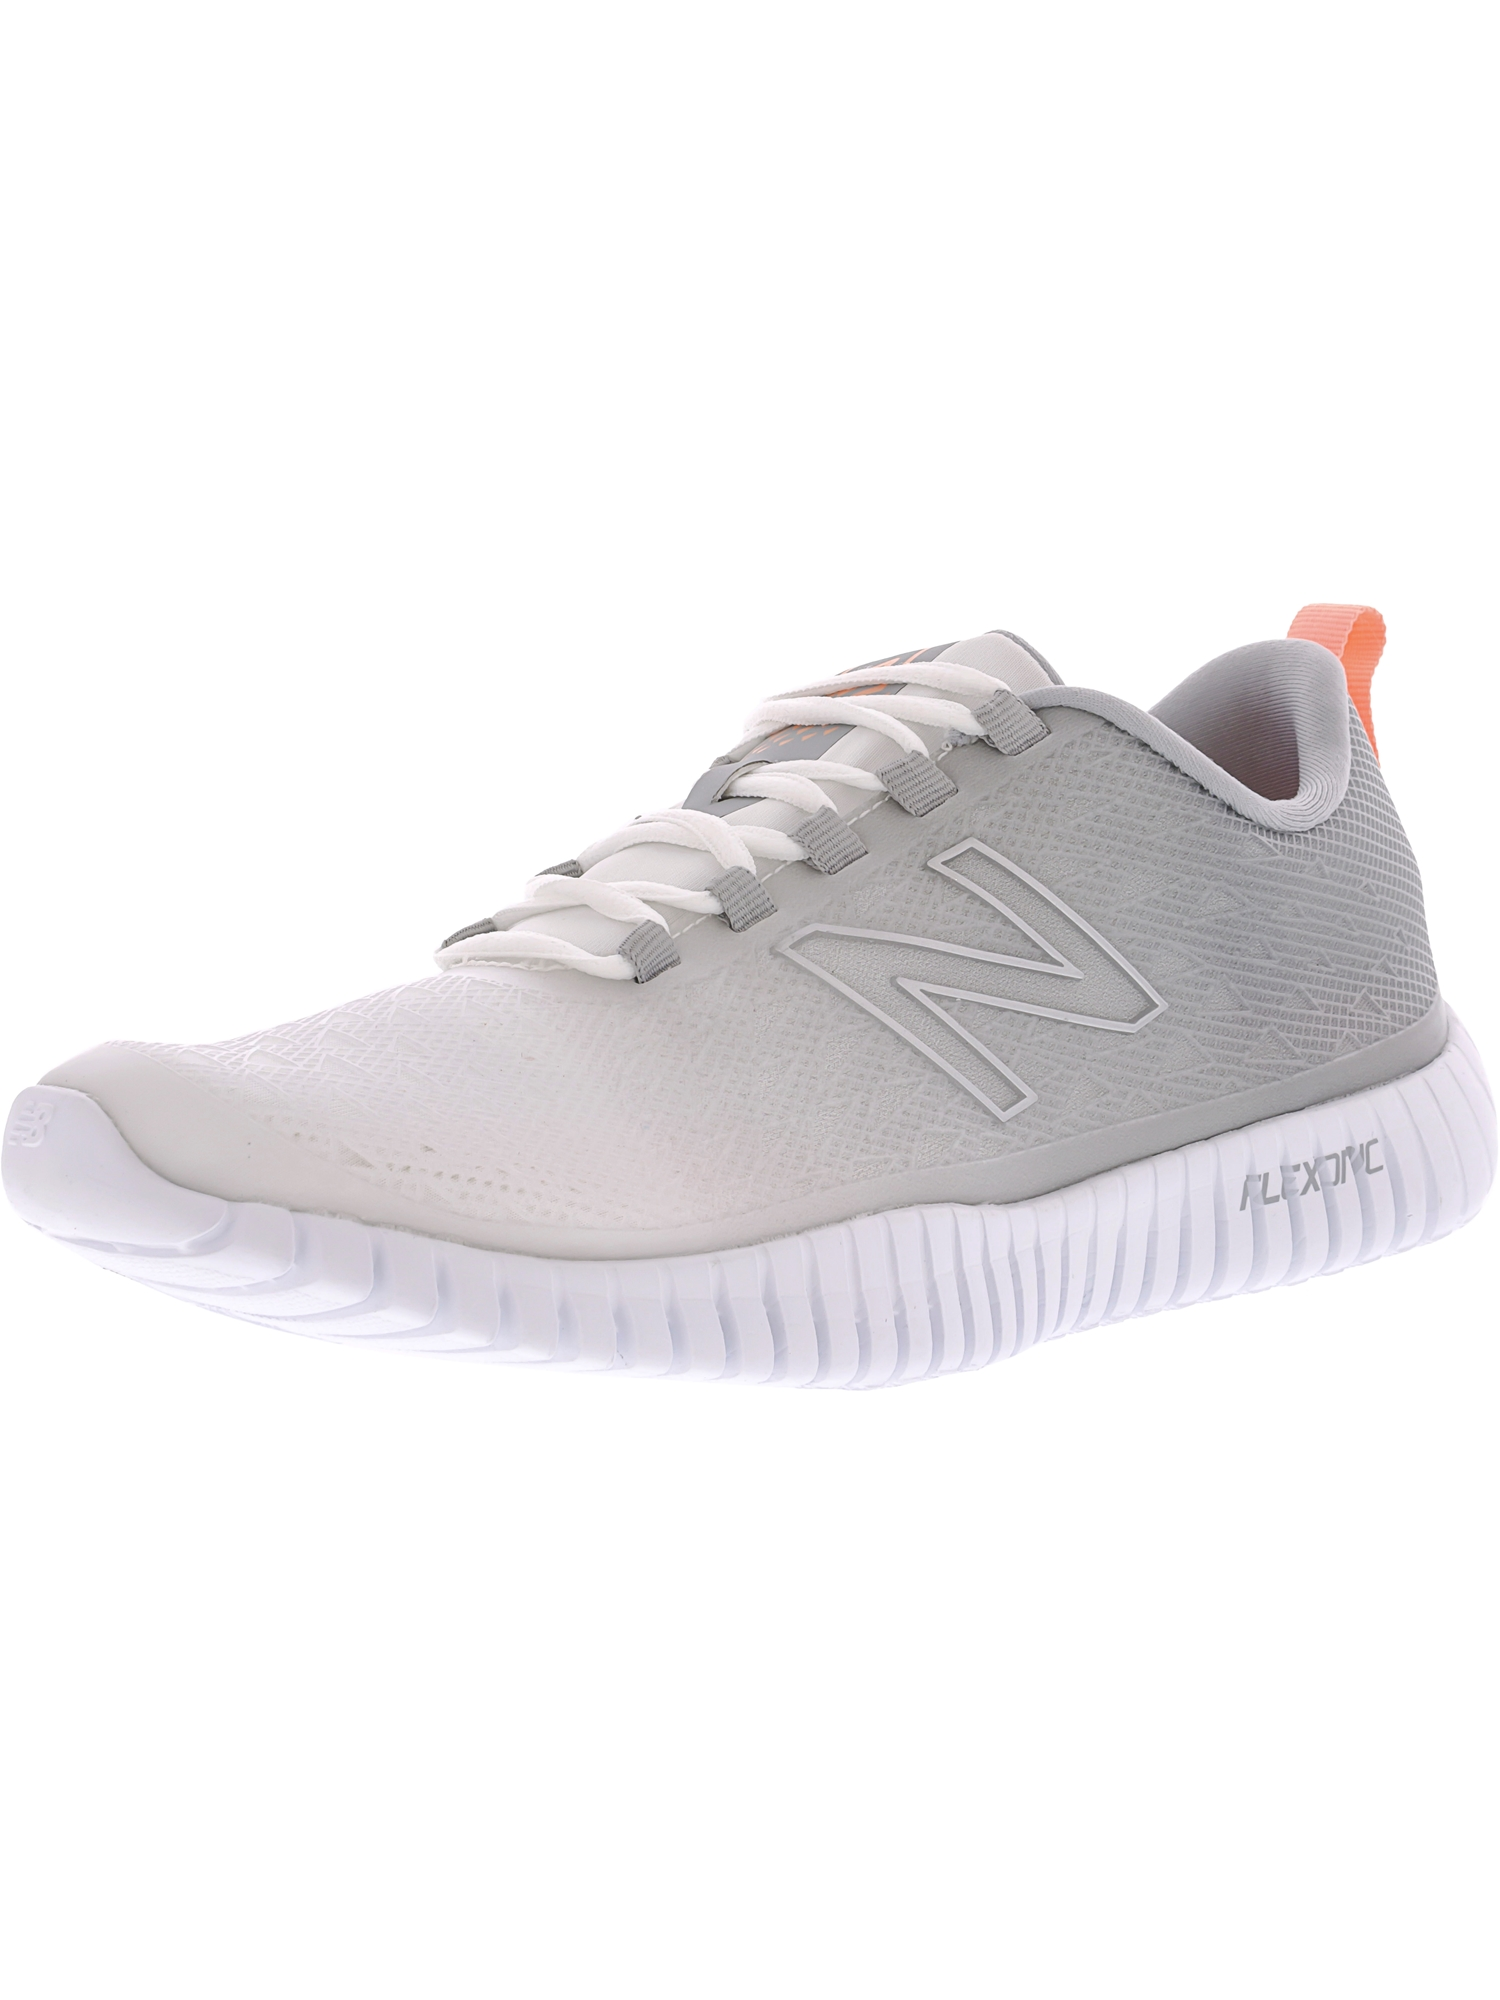 New Balance Women's Wx99 Gk Ankle-High Running Shoe 9M by New Balance